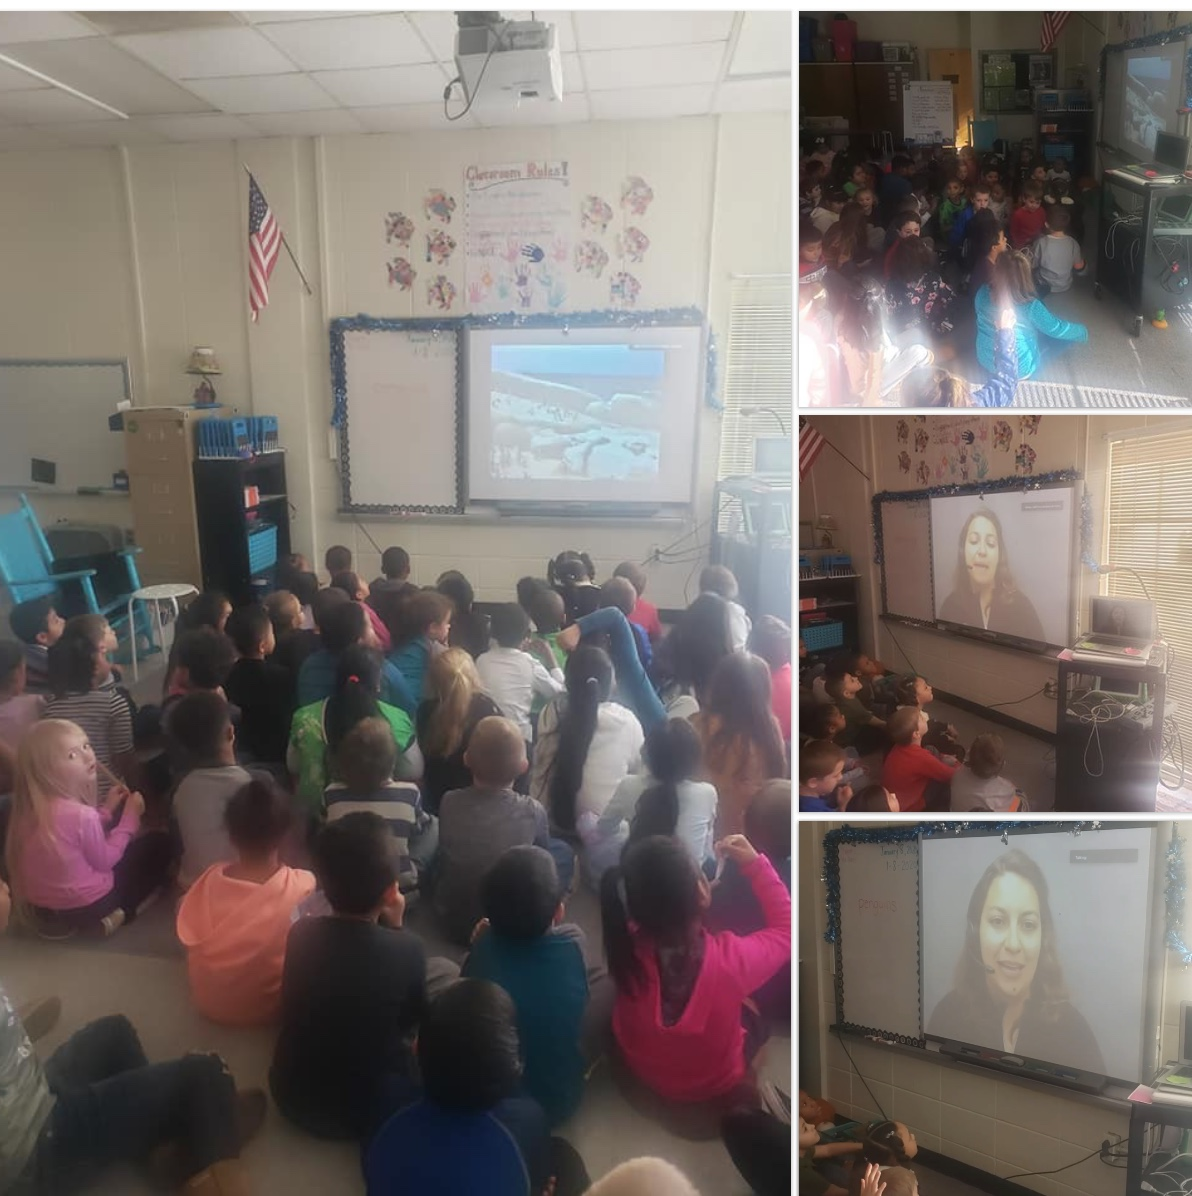 Check out 1st graders participating in Waddle Like a Penguin Program! #CaliforniaAcademyofSciences pic.twitter.com/bpgq6abZB1